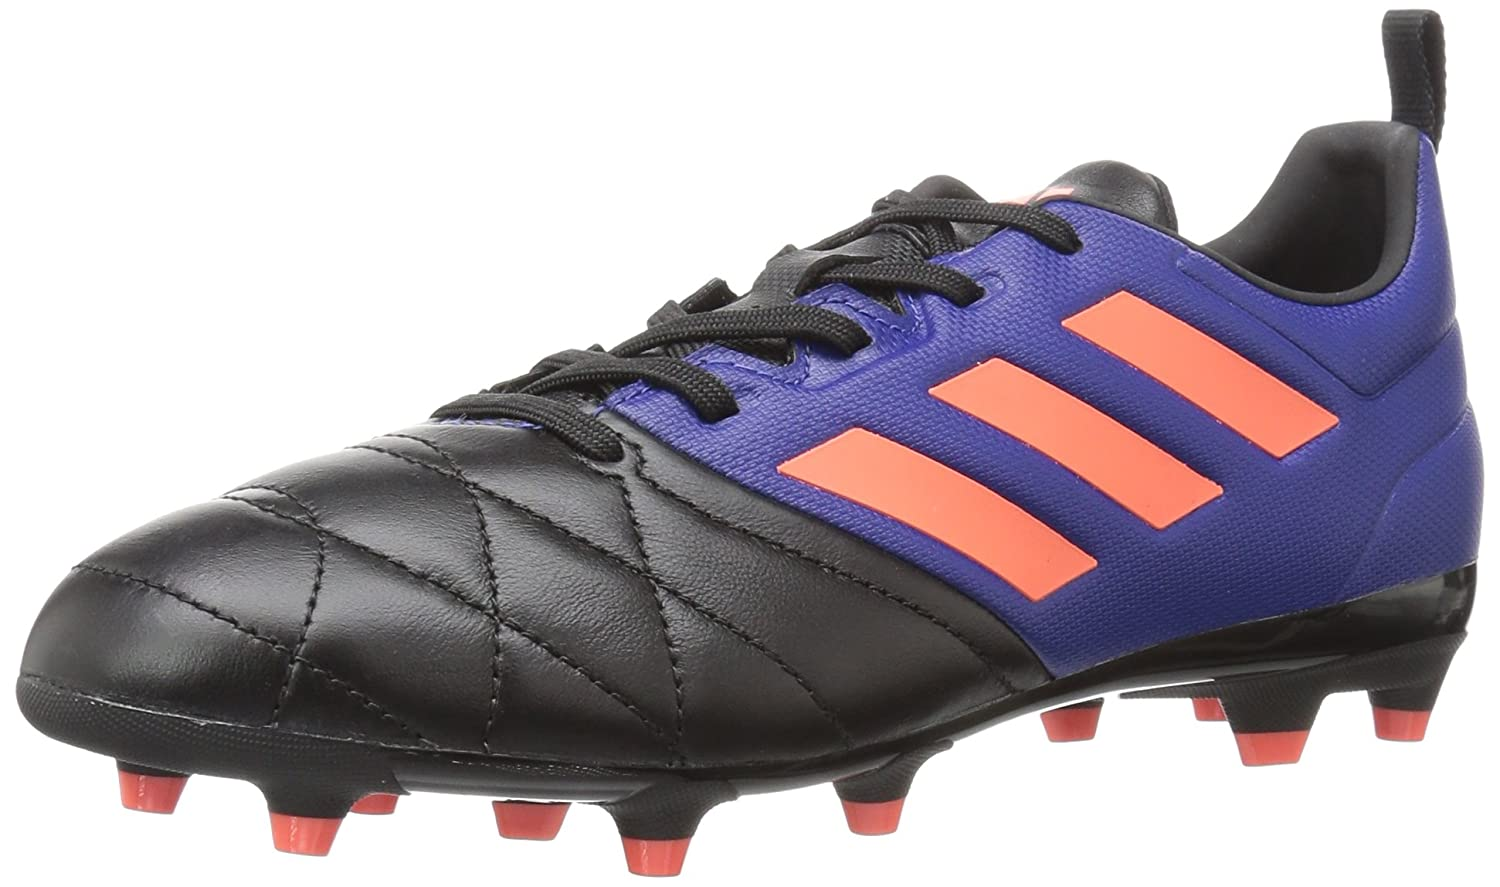 adidas Performance Women's Ace 17.3 FG W Soccer Shoe B01NBKC08A 9.5 B(M) US|Mystery Ink/Easy Coral/Black